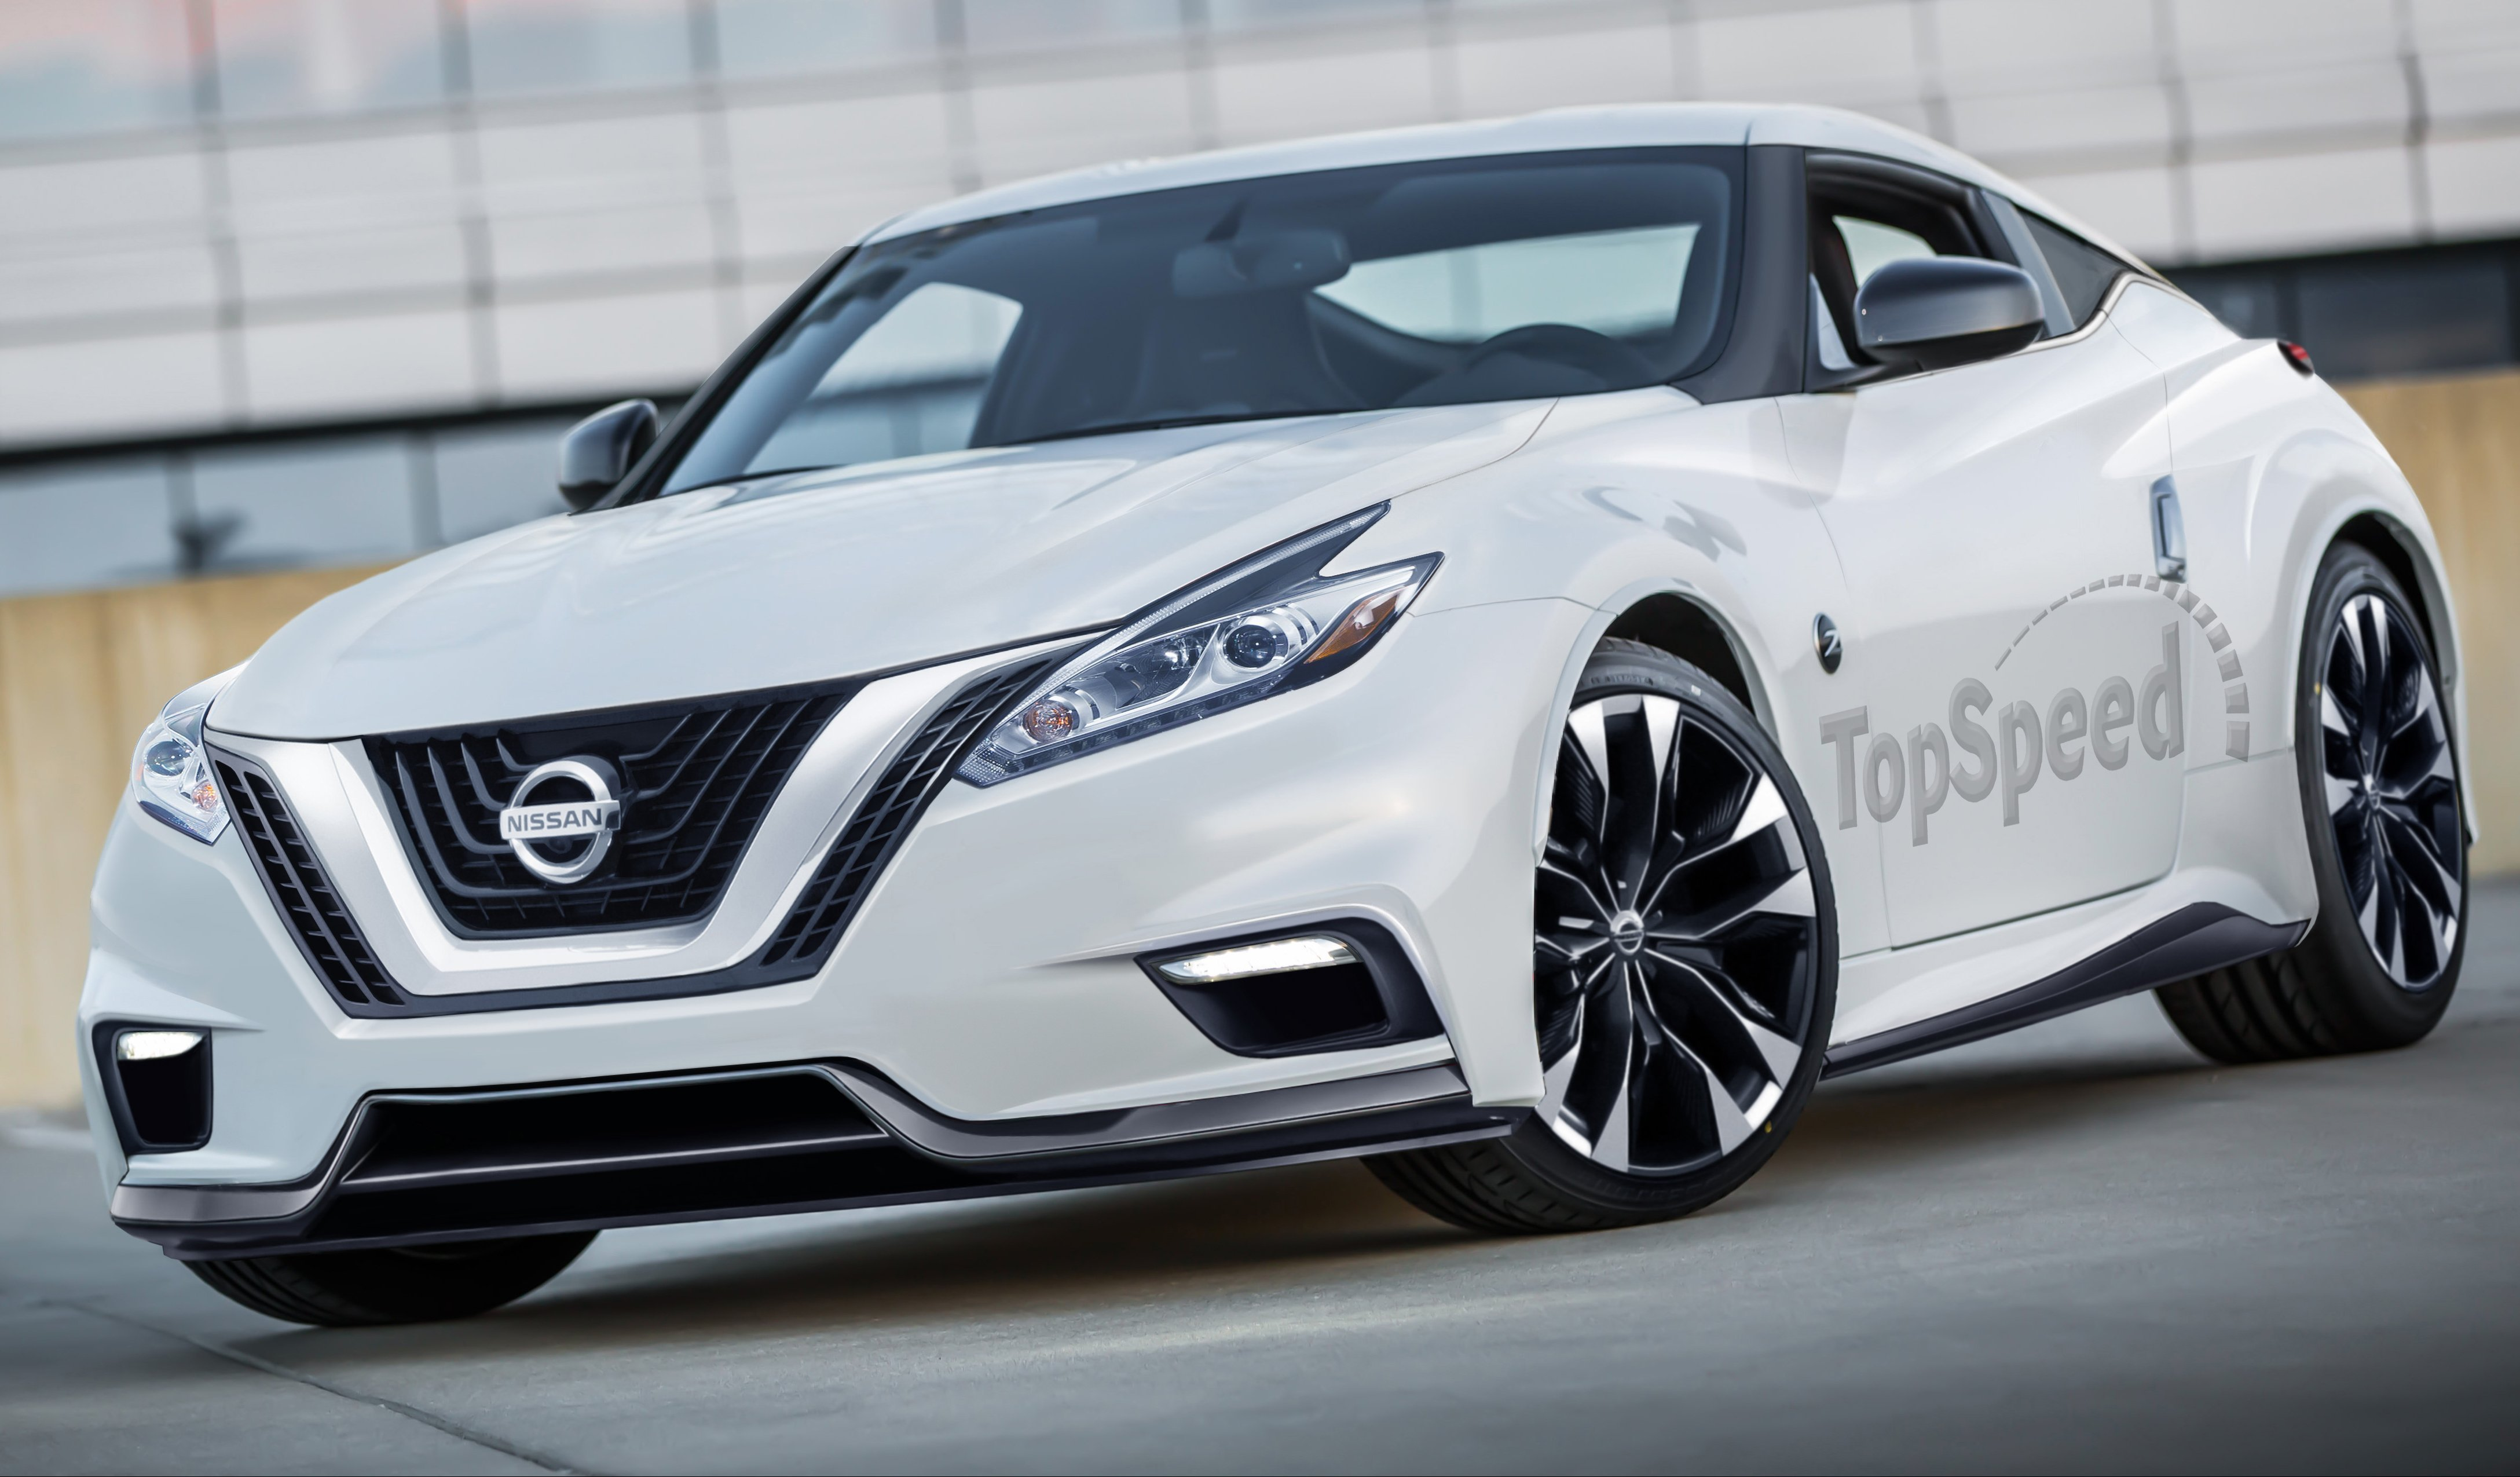 New 2018 Nissan Z Top Speed On This Month